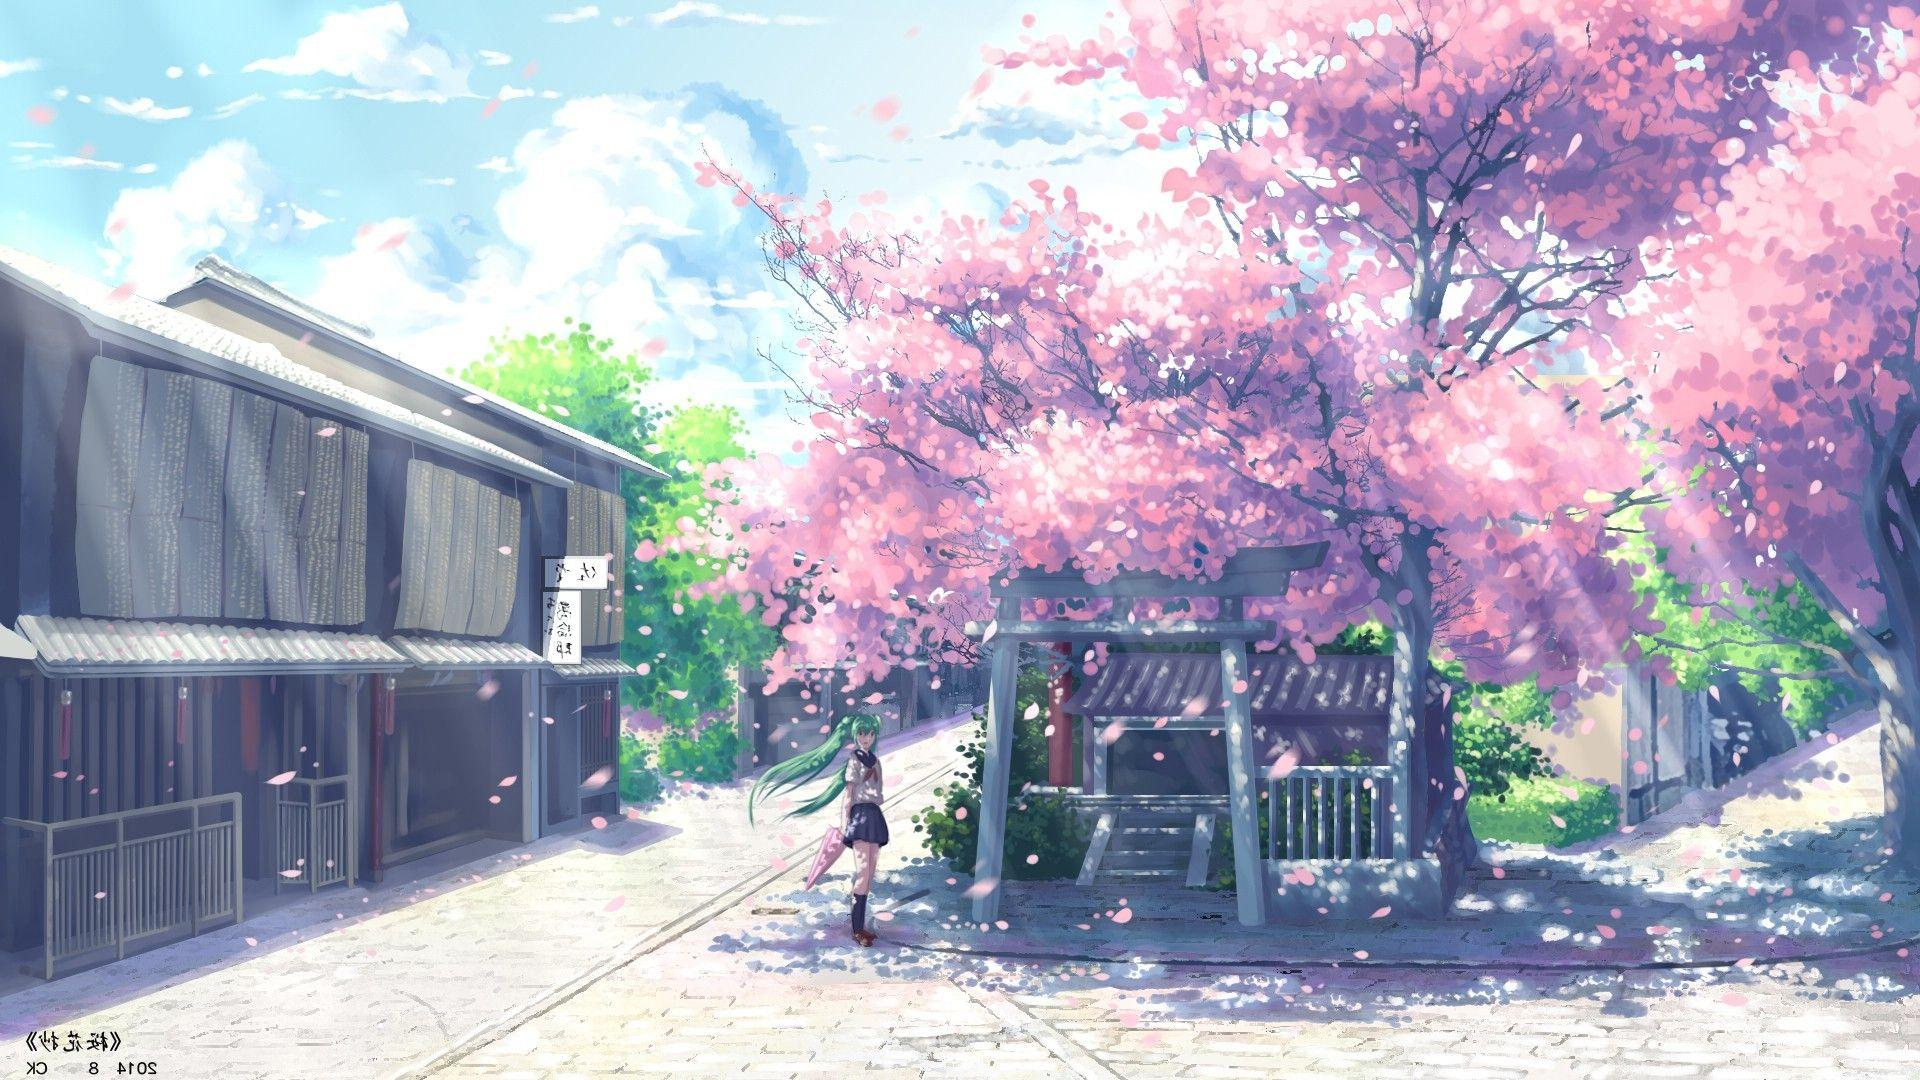 Aesthetic Scenery Cute Background Discover Amazing Places